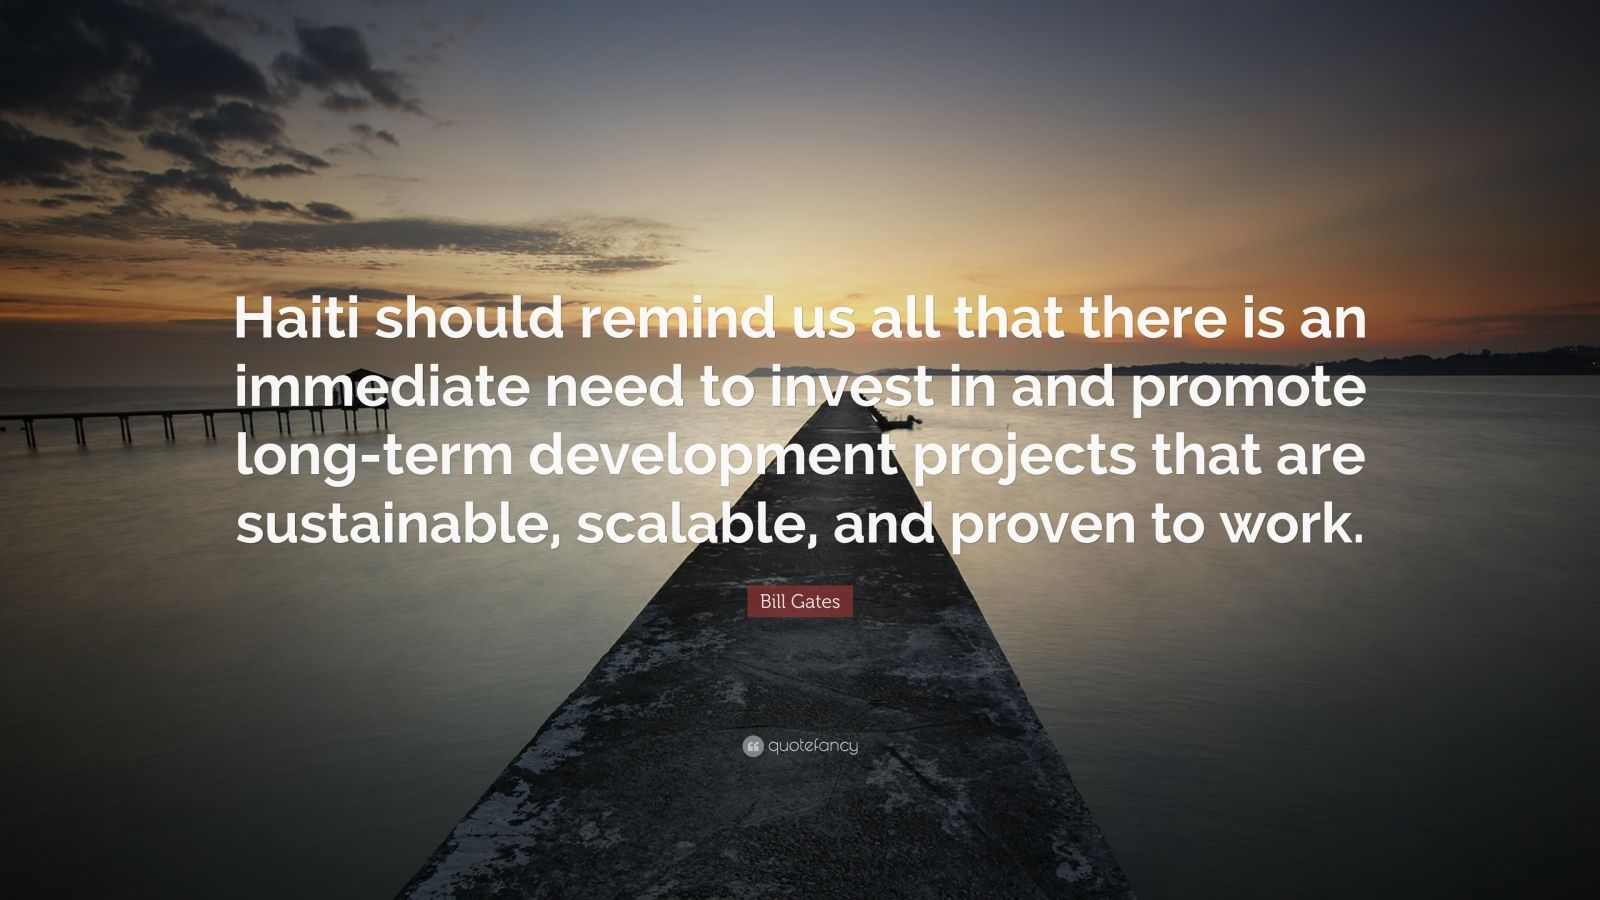 """Bill Gates Quote: """"Haiti should remind us all that there is an immediate need to invest in and promote long-term development projects that are sustainable, scalable, and proven to work."""""""